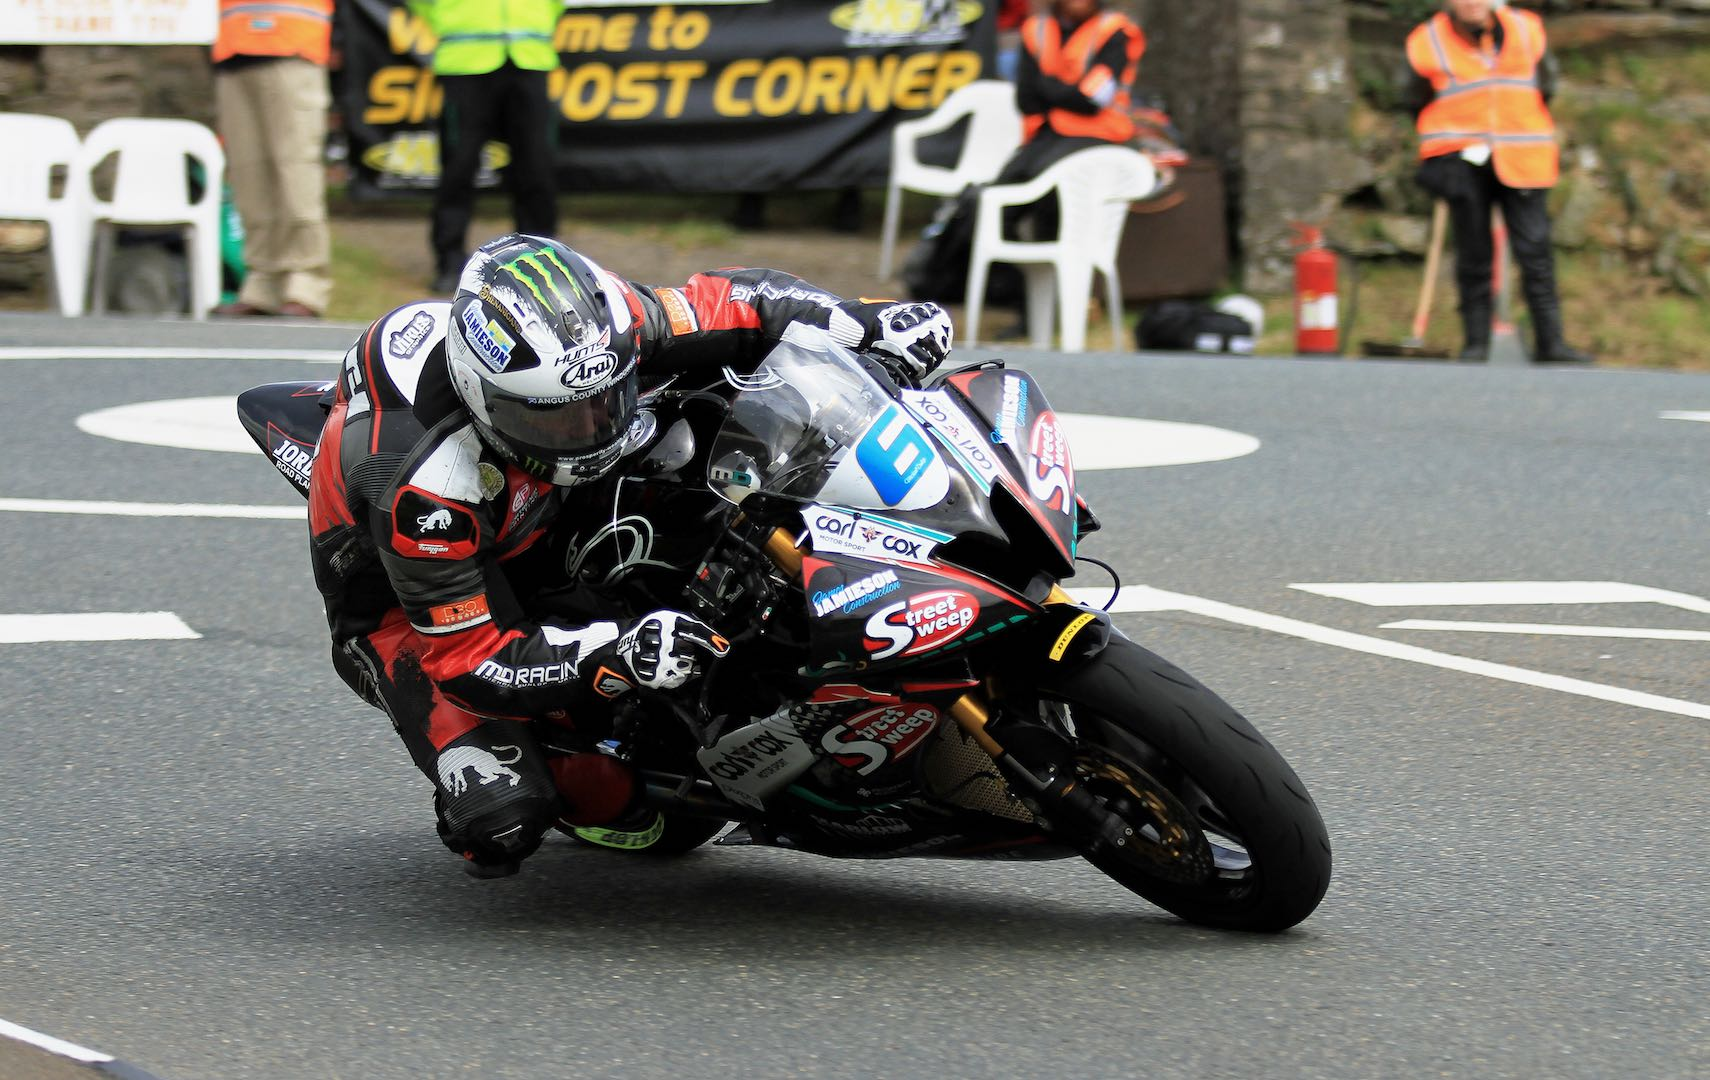 2017 Monster Energy Supersport 1 TT: Yamaha's Michael Dunlop